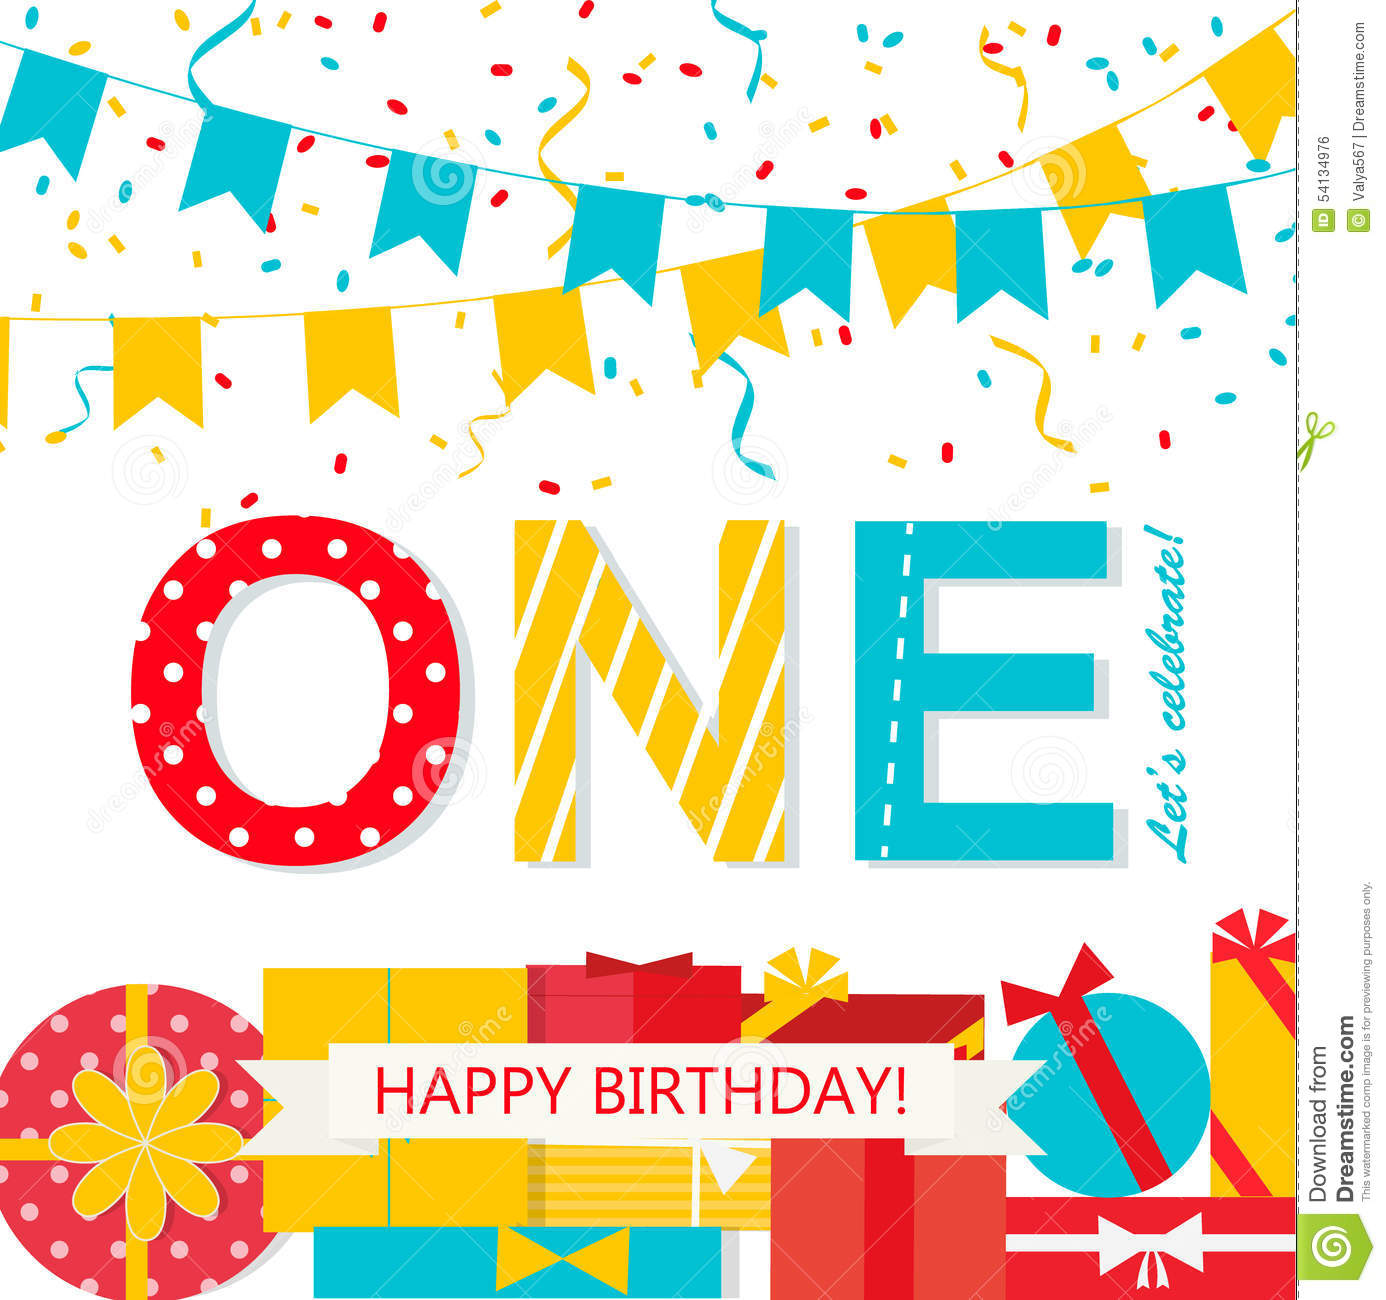 first birthday background images ; happy-first-birthday-anniversary-card-flags-gifts-streamers-54134976